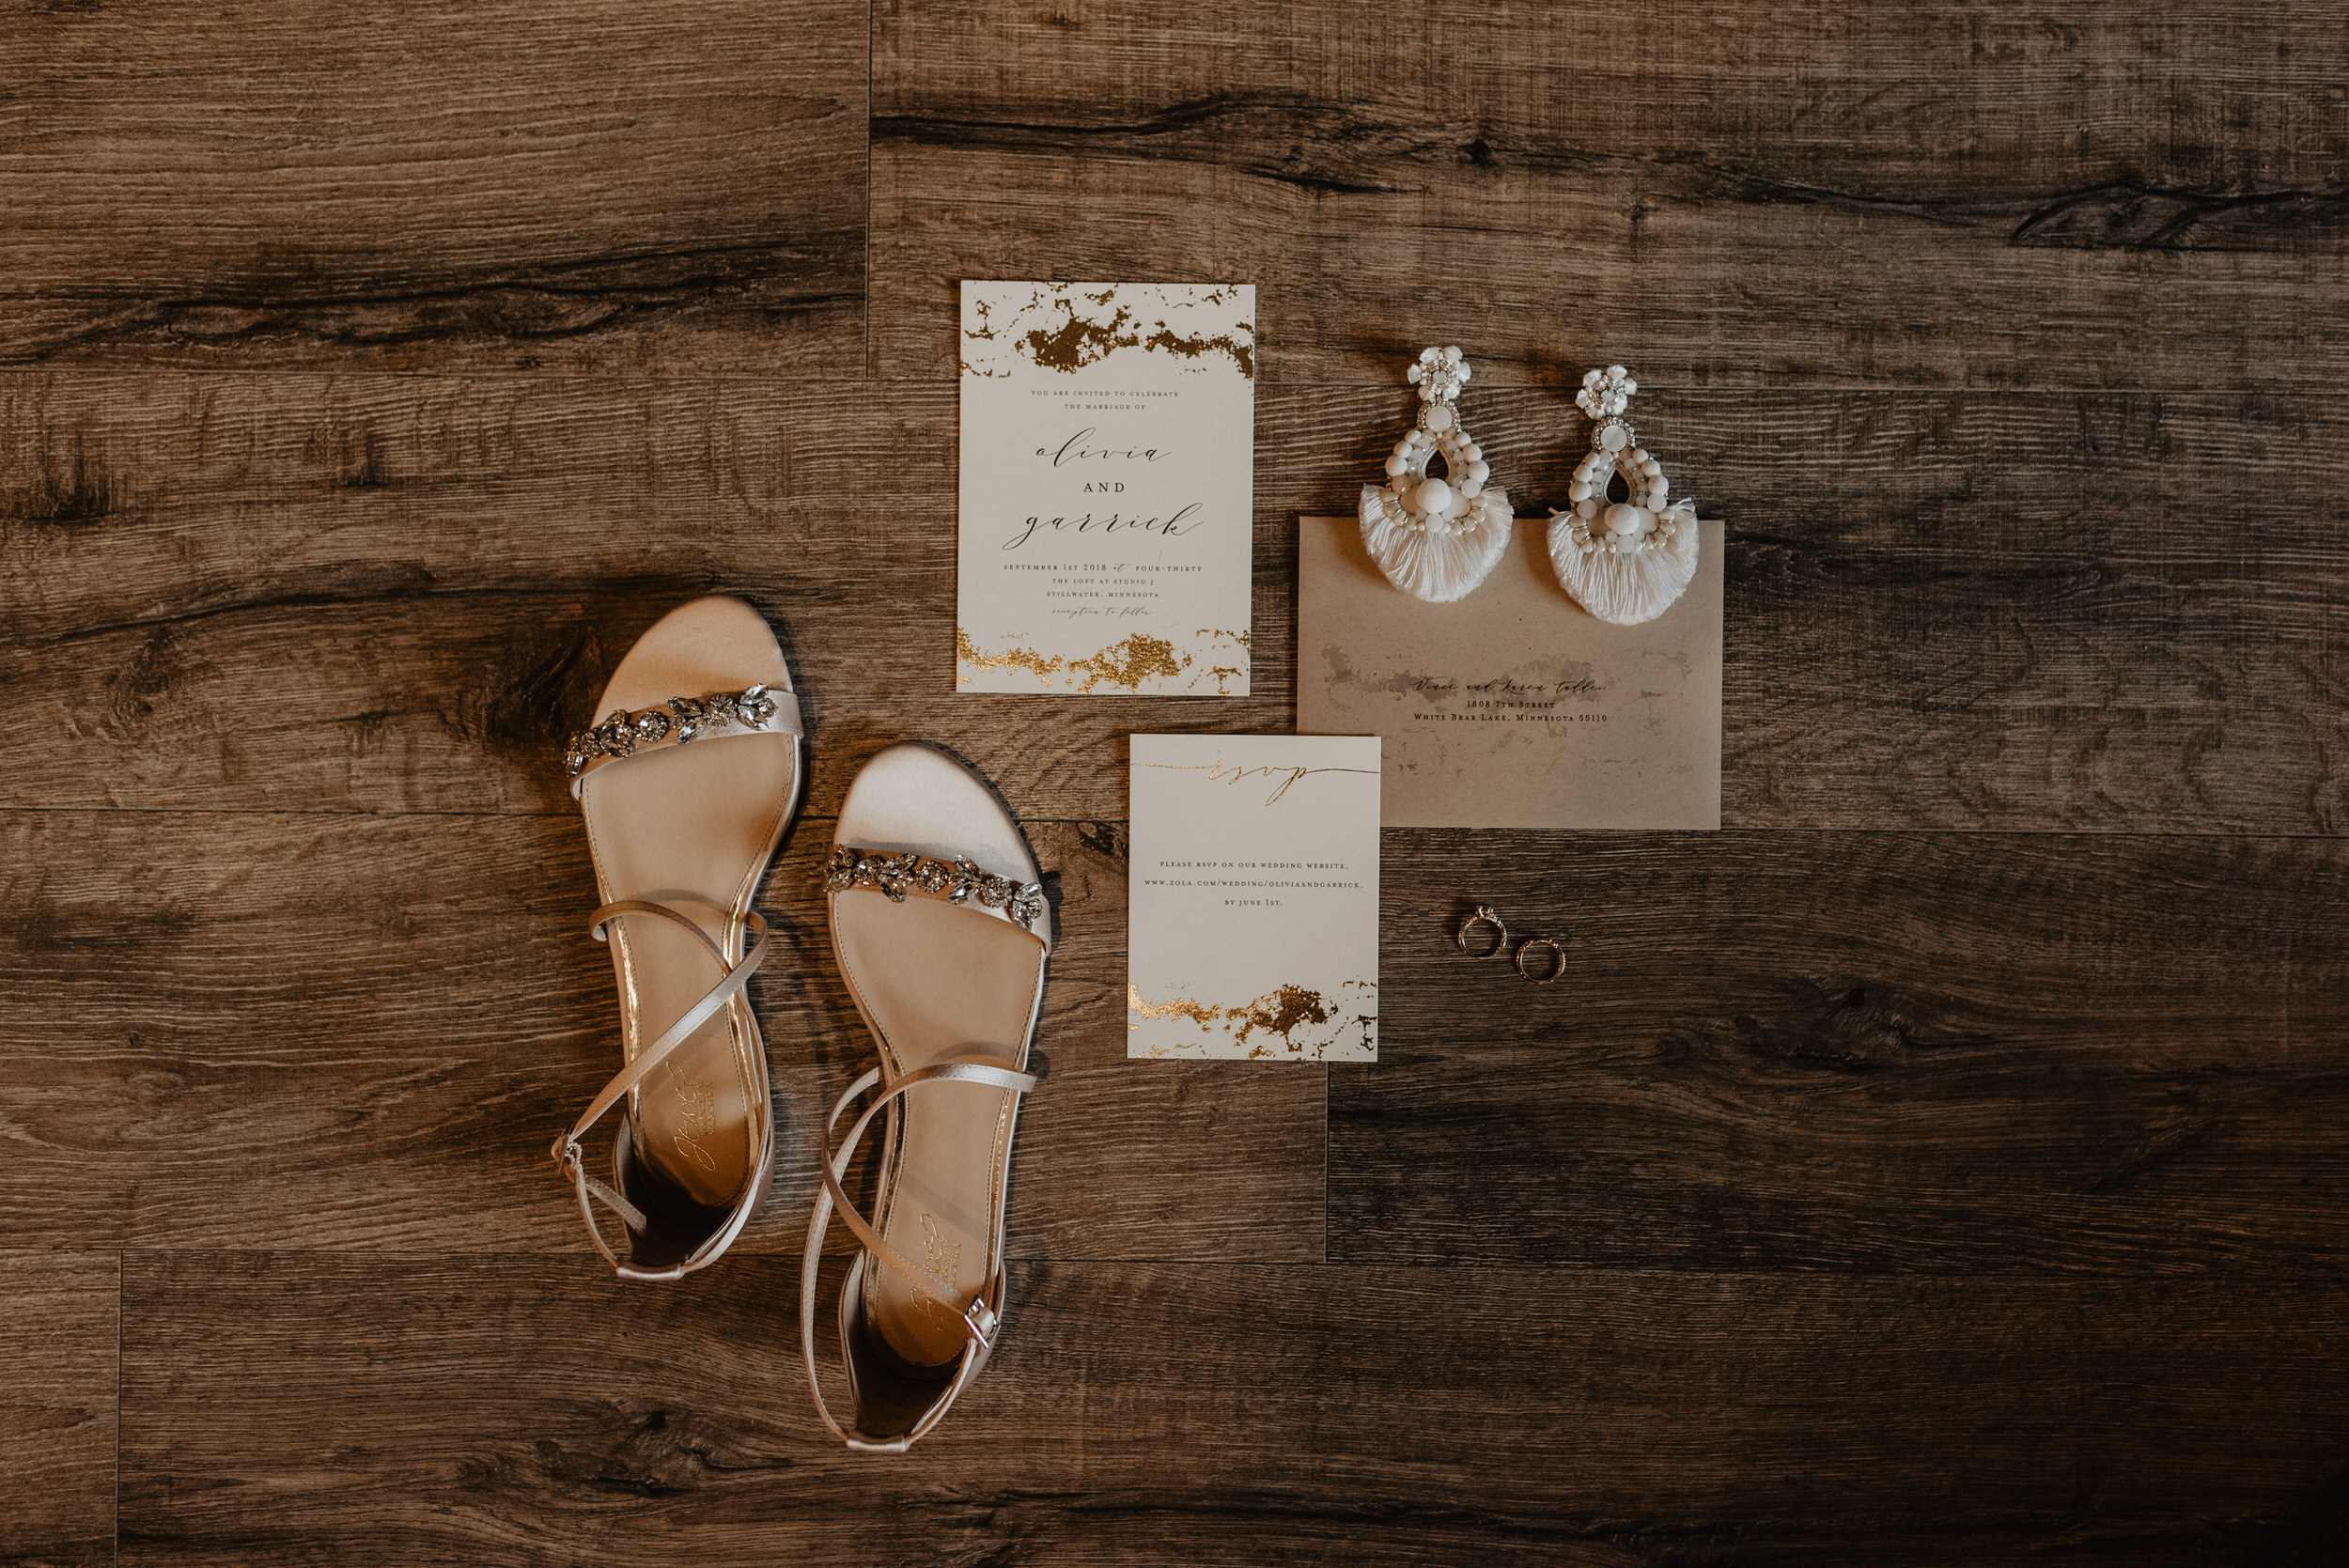 Stillwater-Minnesota-Wedding-Loft-at-Studio-J-Kaylie-Sirek-Photography-01.jpg